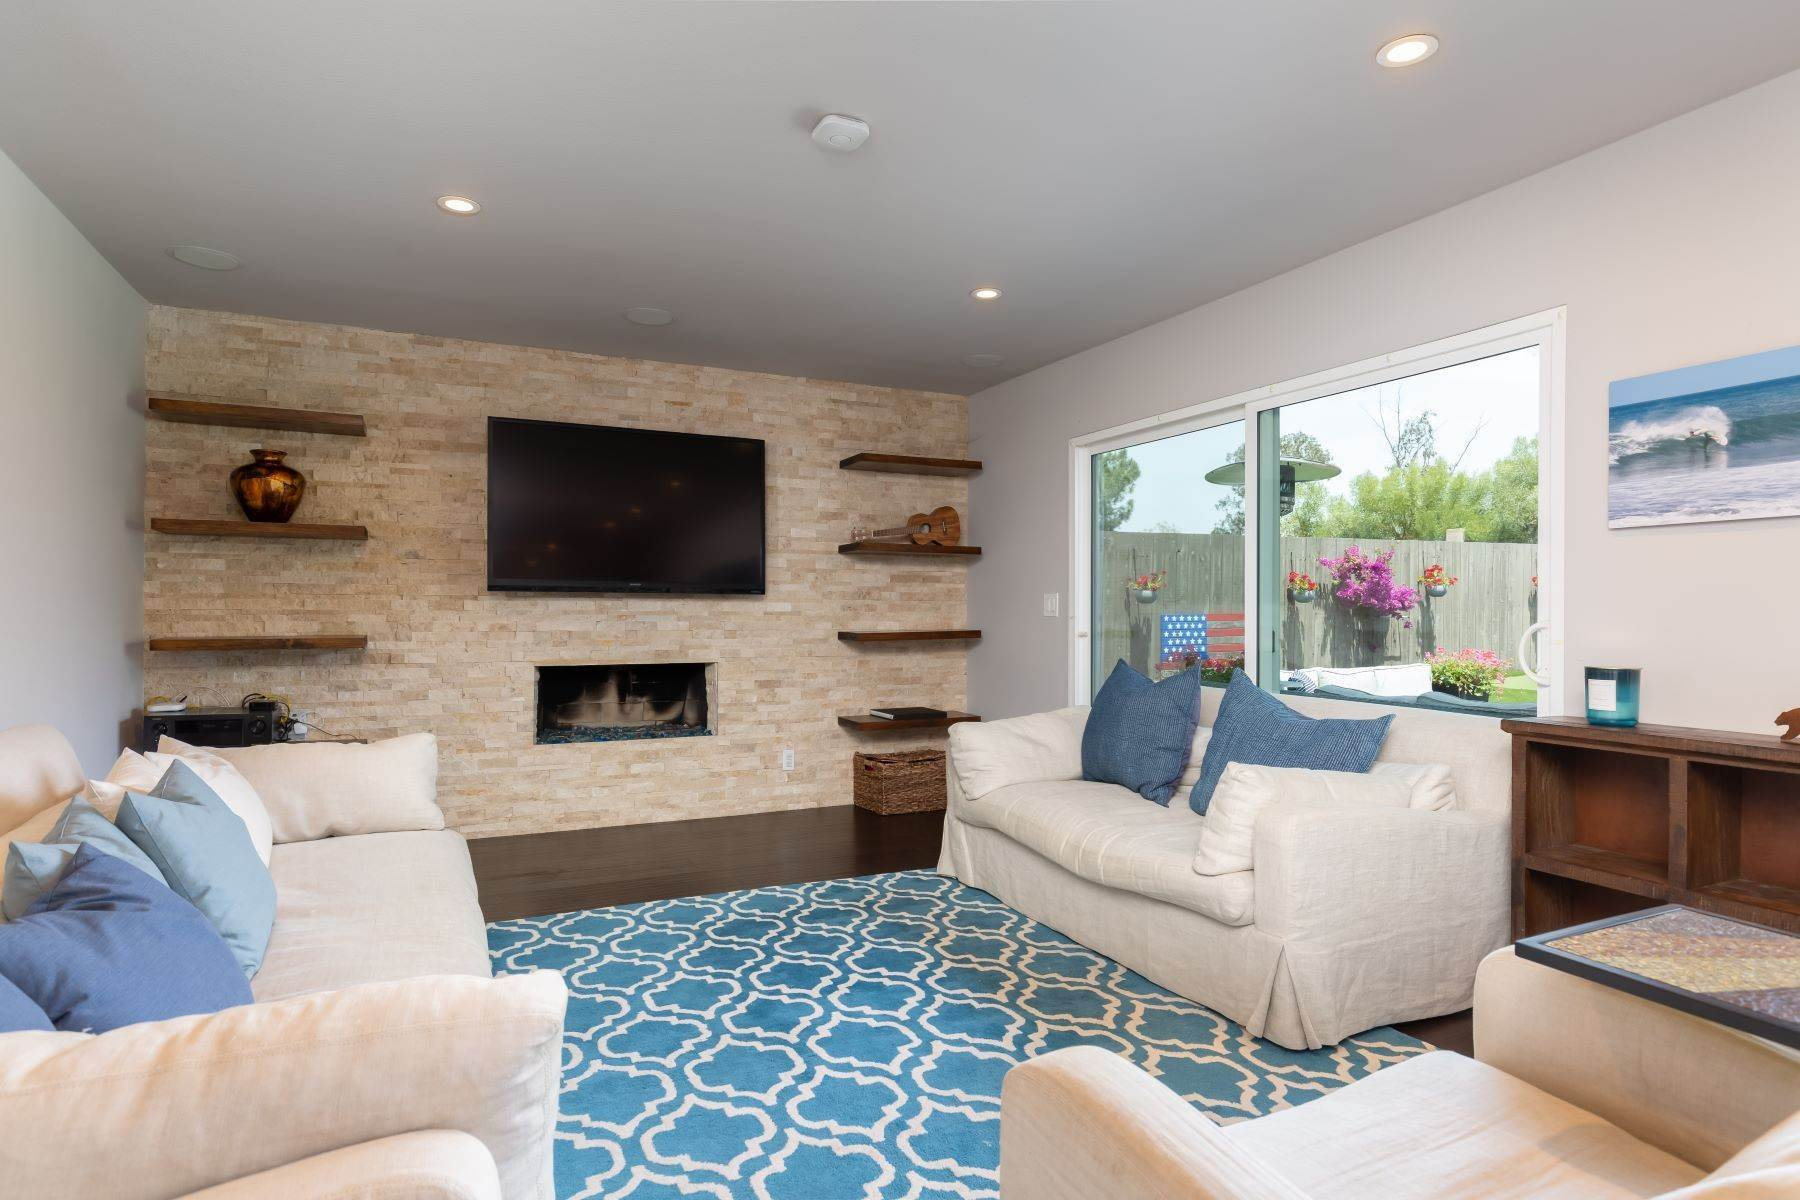 11. Single Family Homes for Sale at 13475 Portofino Drive, Del Mar, CA 92014 13475 Portofino Drive Del Mar, California 92014 United States